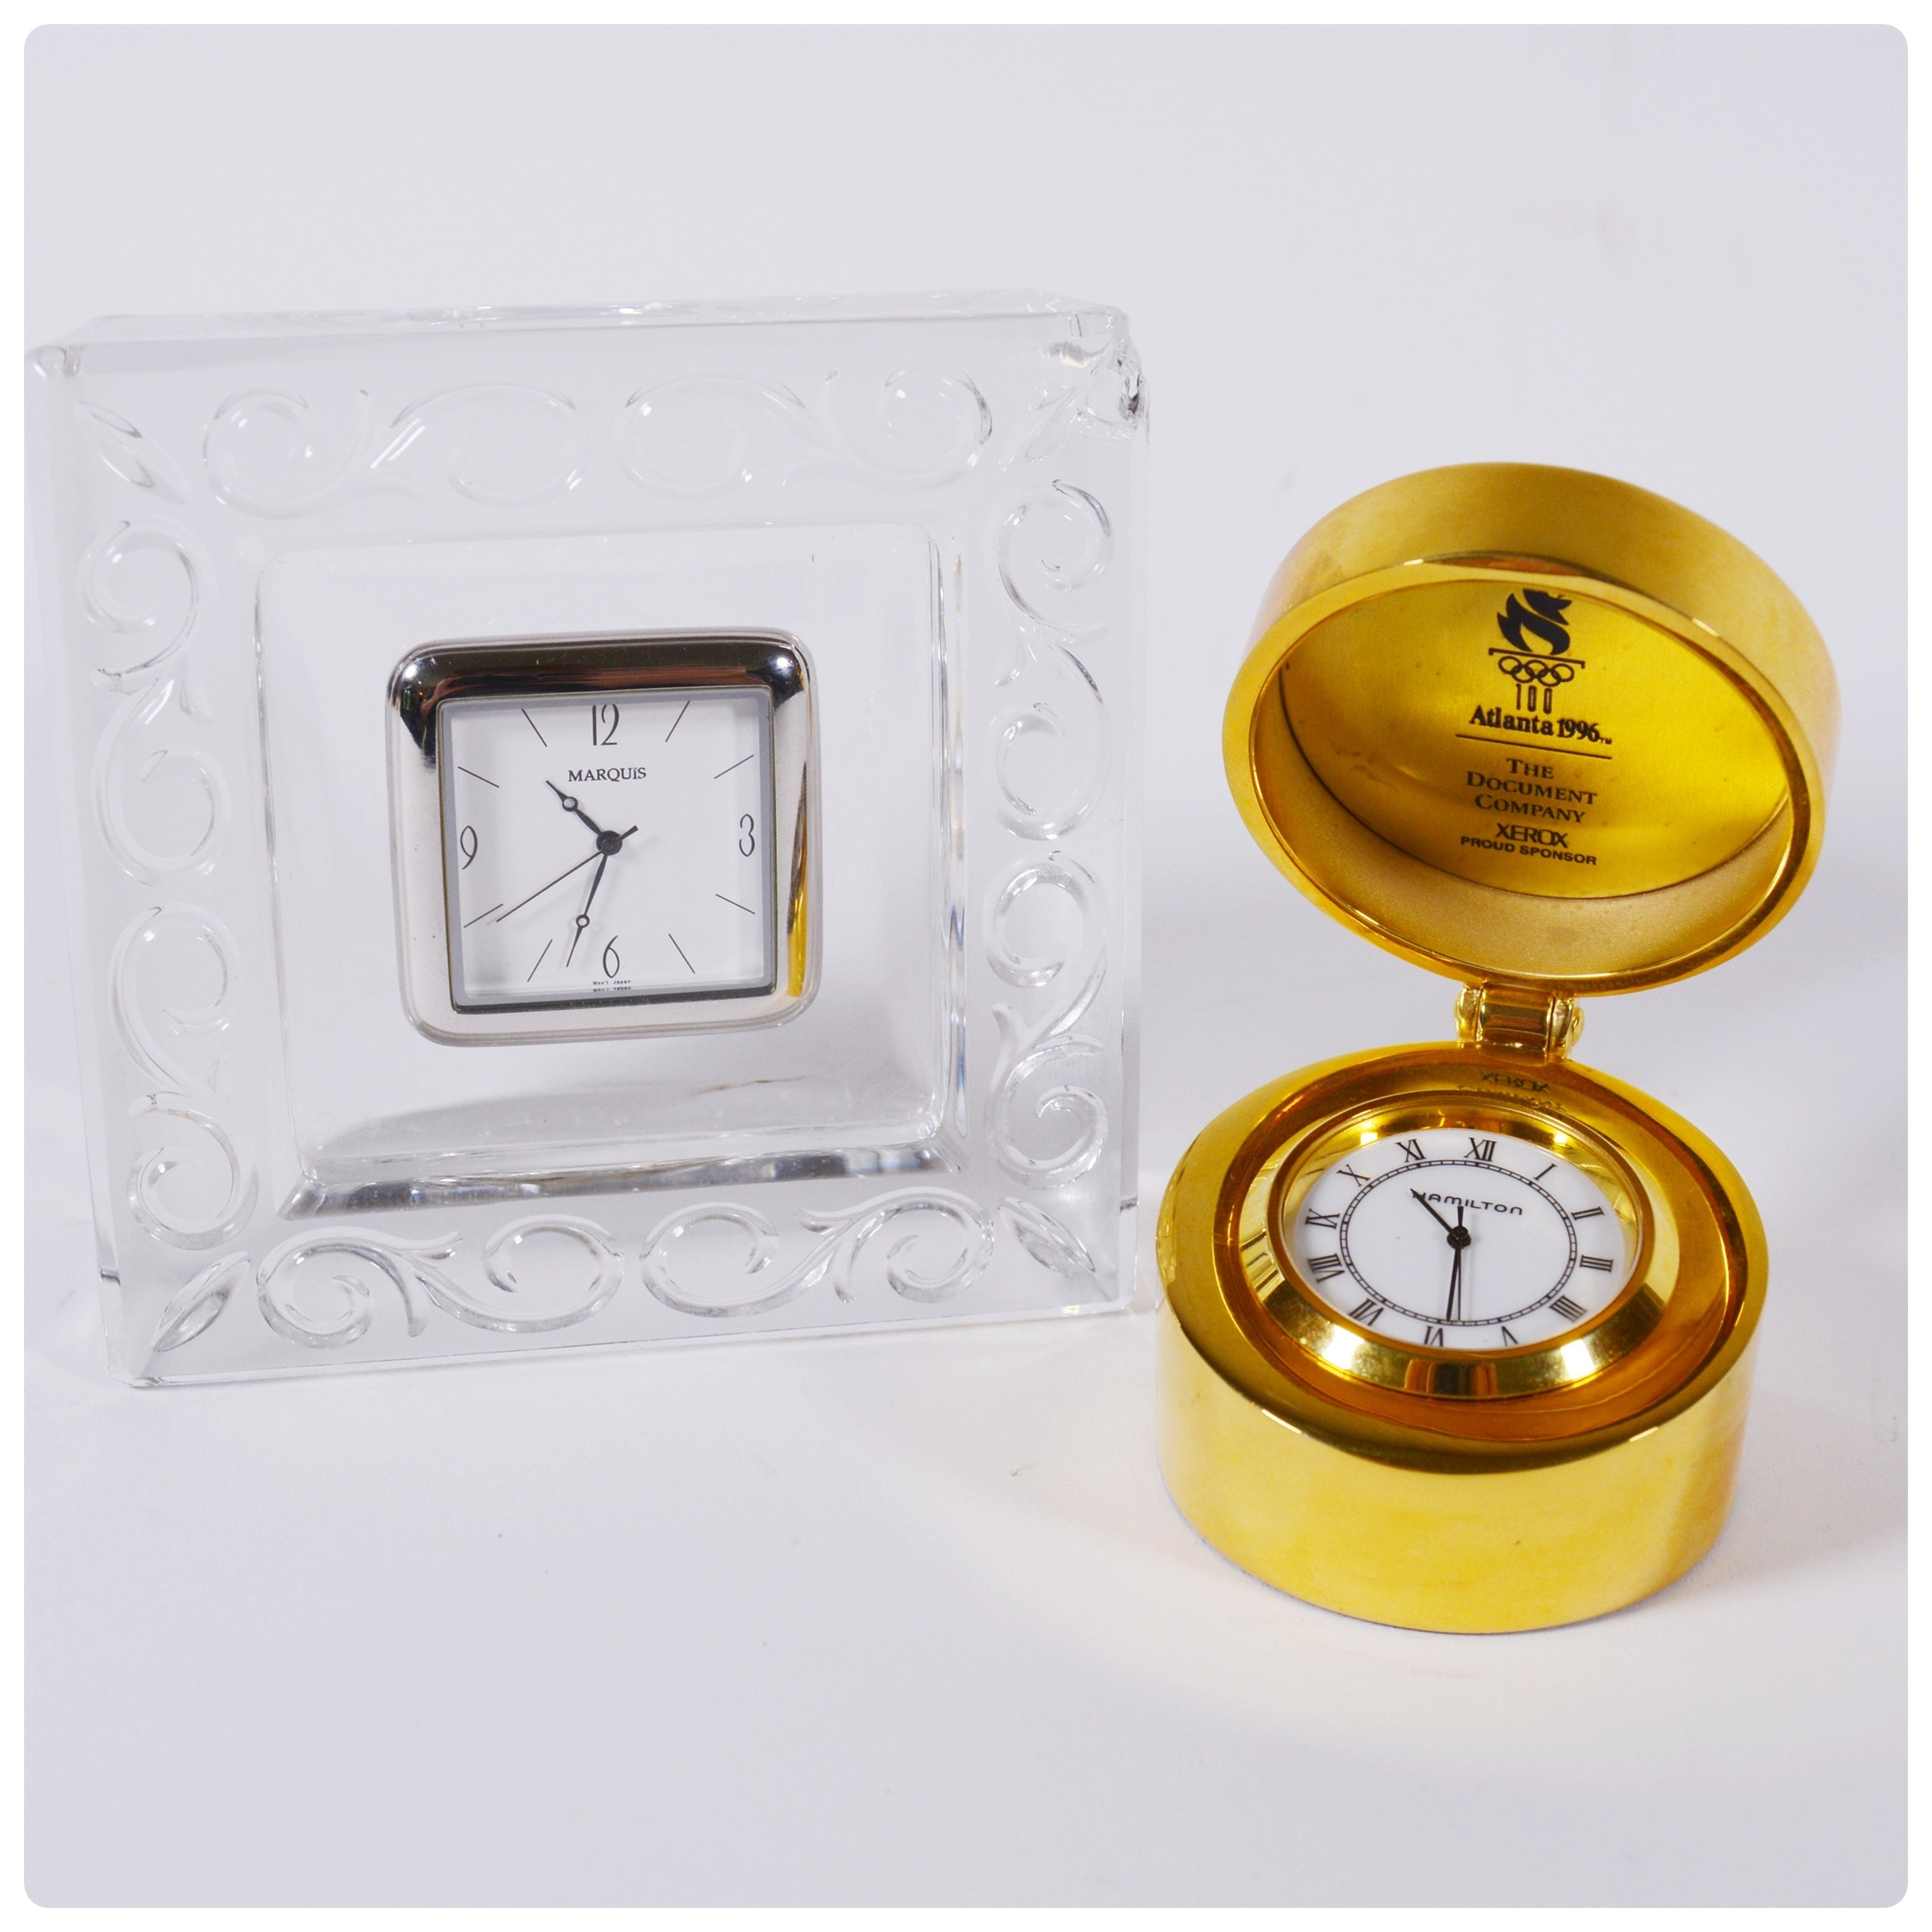 Marquis by Waterford Crystal Desk Clock and Hamilton Travel Clock